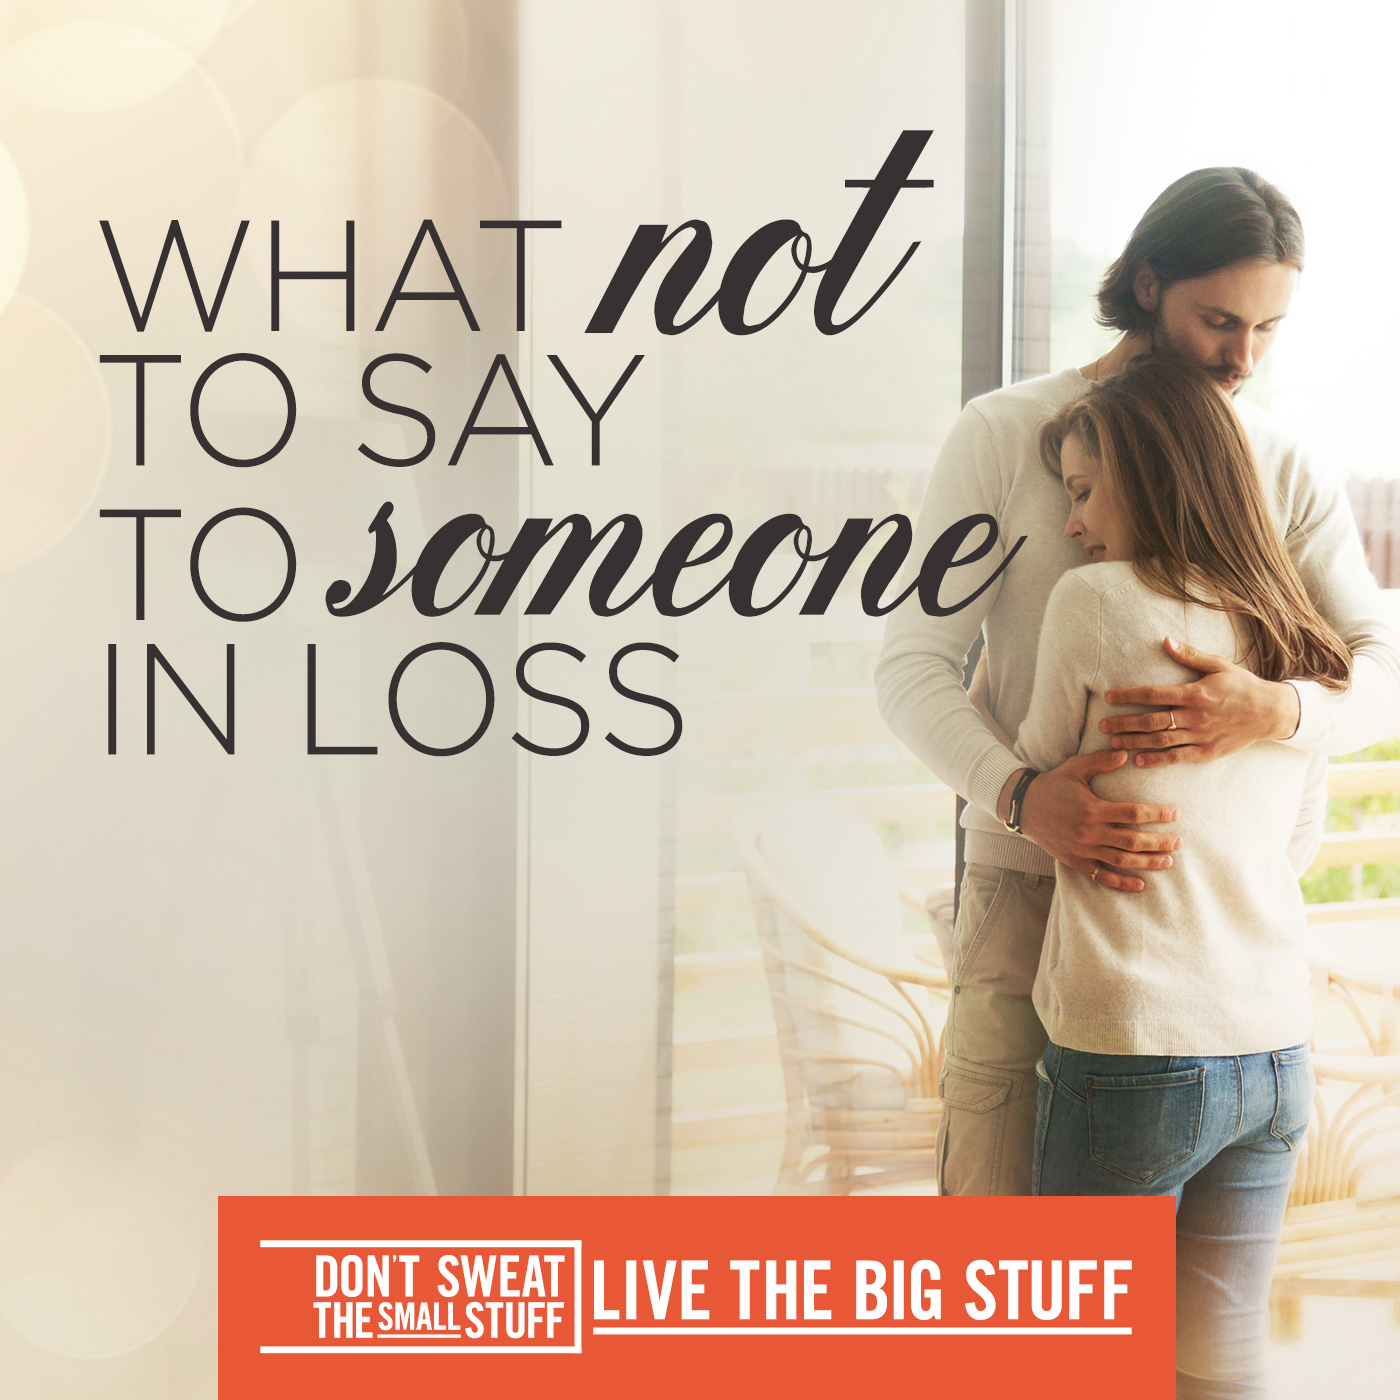 What not to say to someone experiencing loss